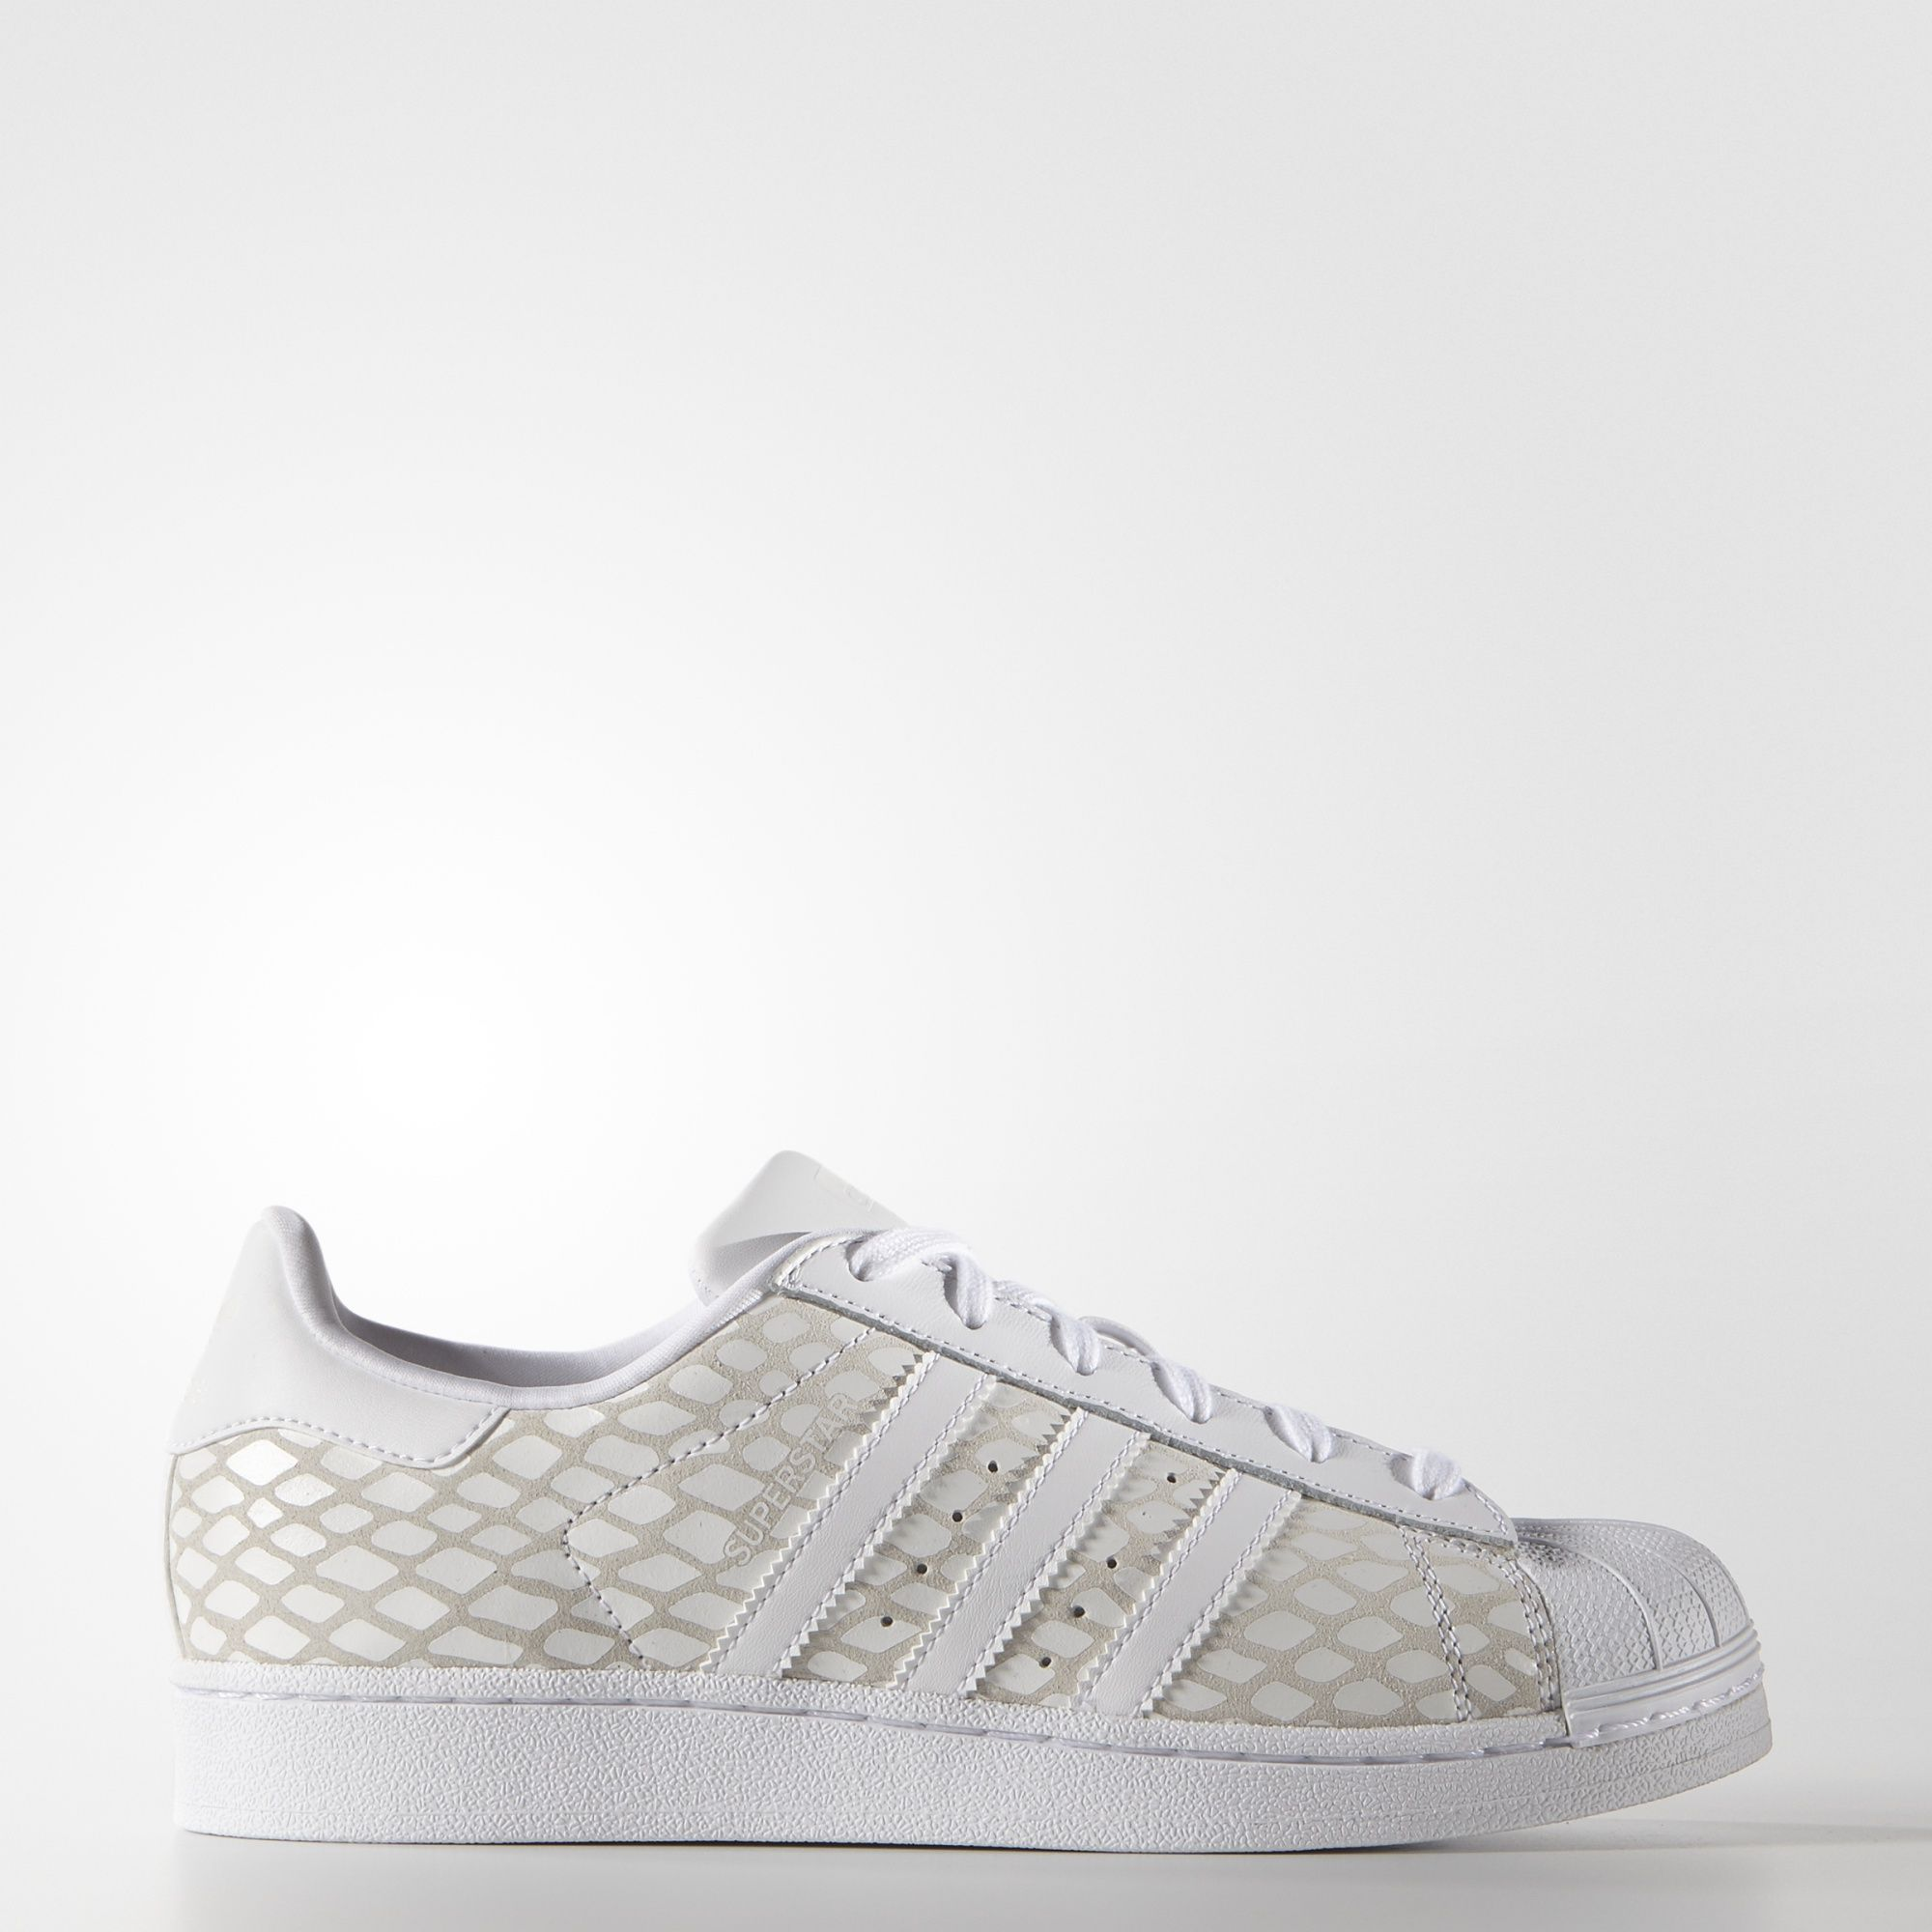 2e77031f2de1d The adidas Superstar shoe stepped onto basketball courts in 1970, earning a  sterling reputation in the NBA before moving to the street.